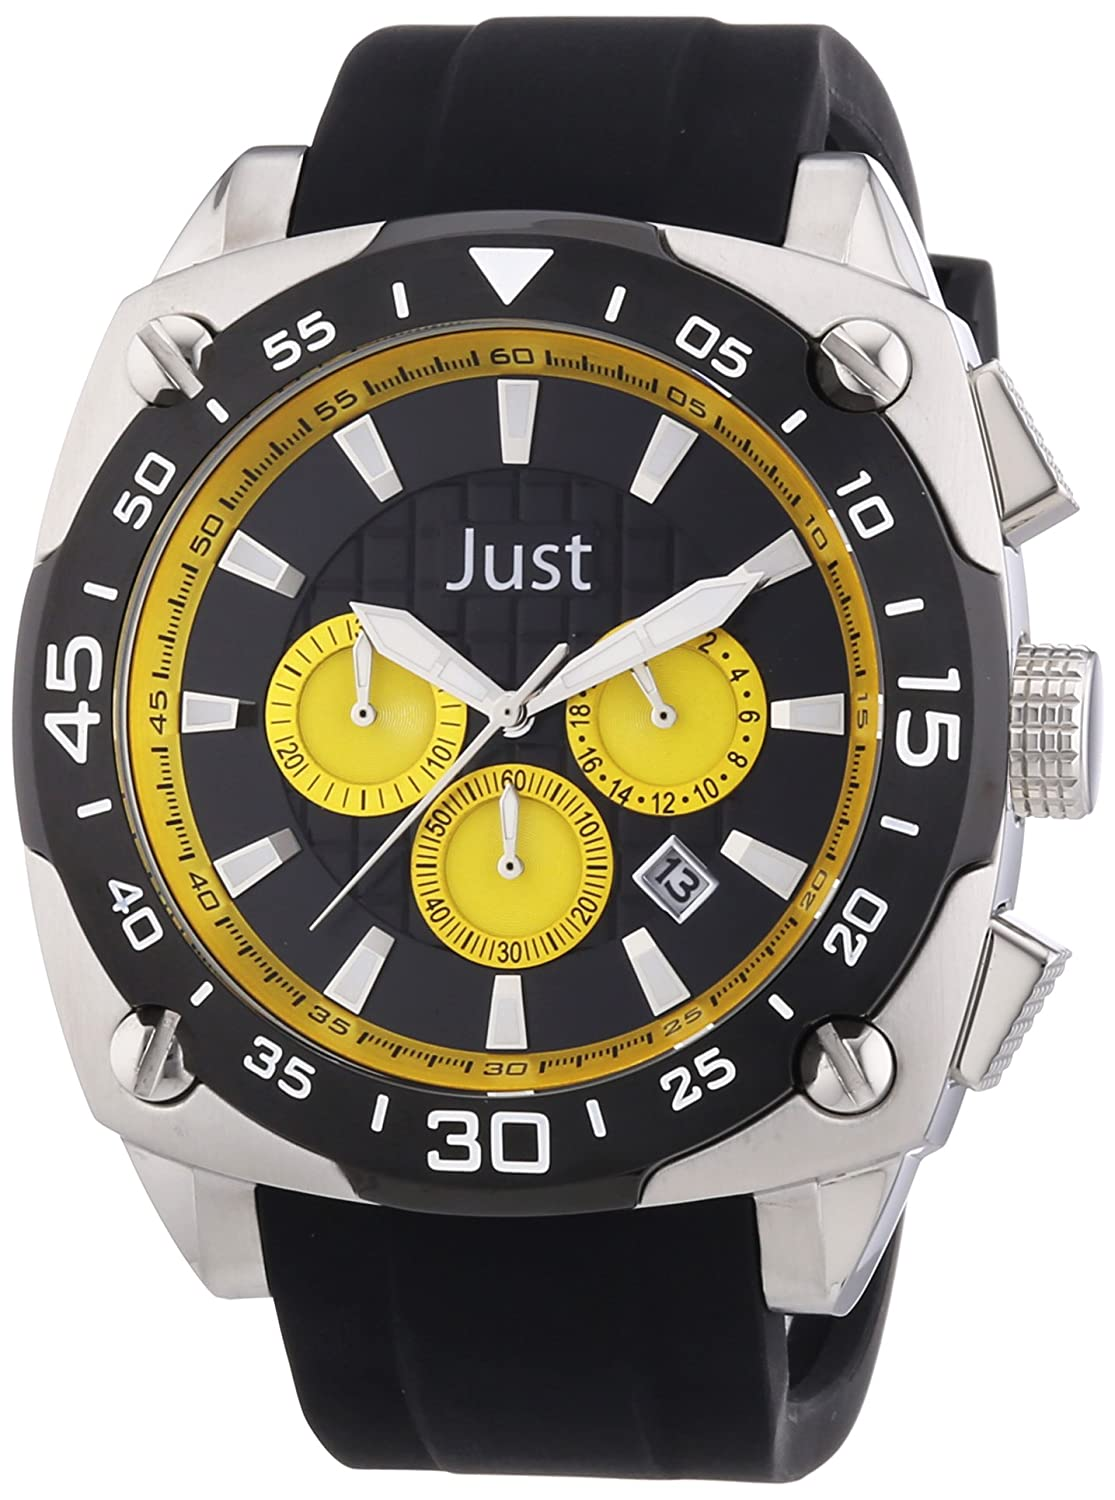 Just Watches Herren-Armbanduhr XL Analog Quarz Kautschuk 48-STG2373-YL